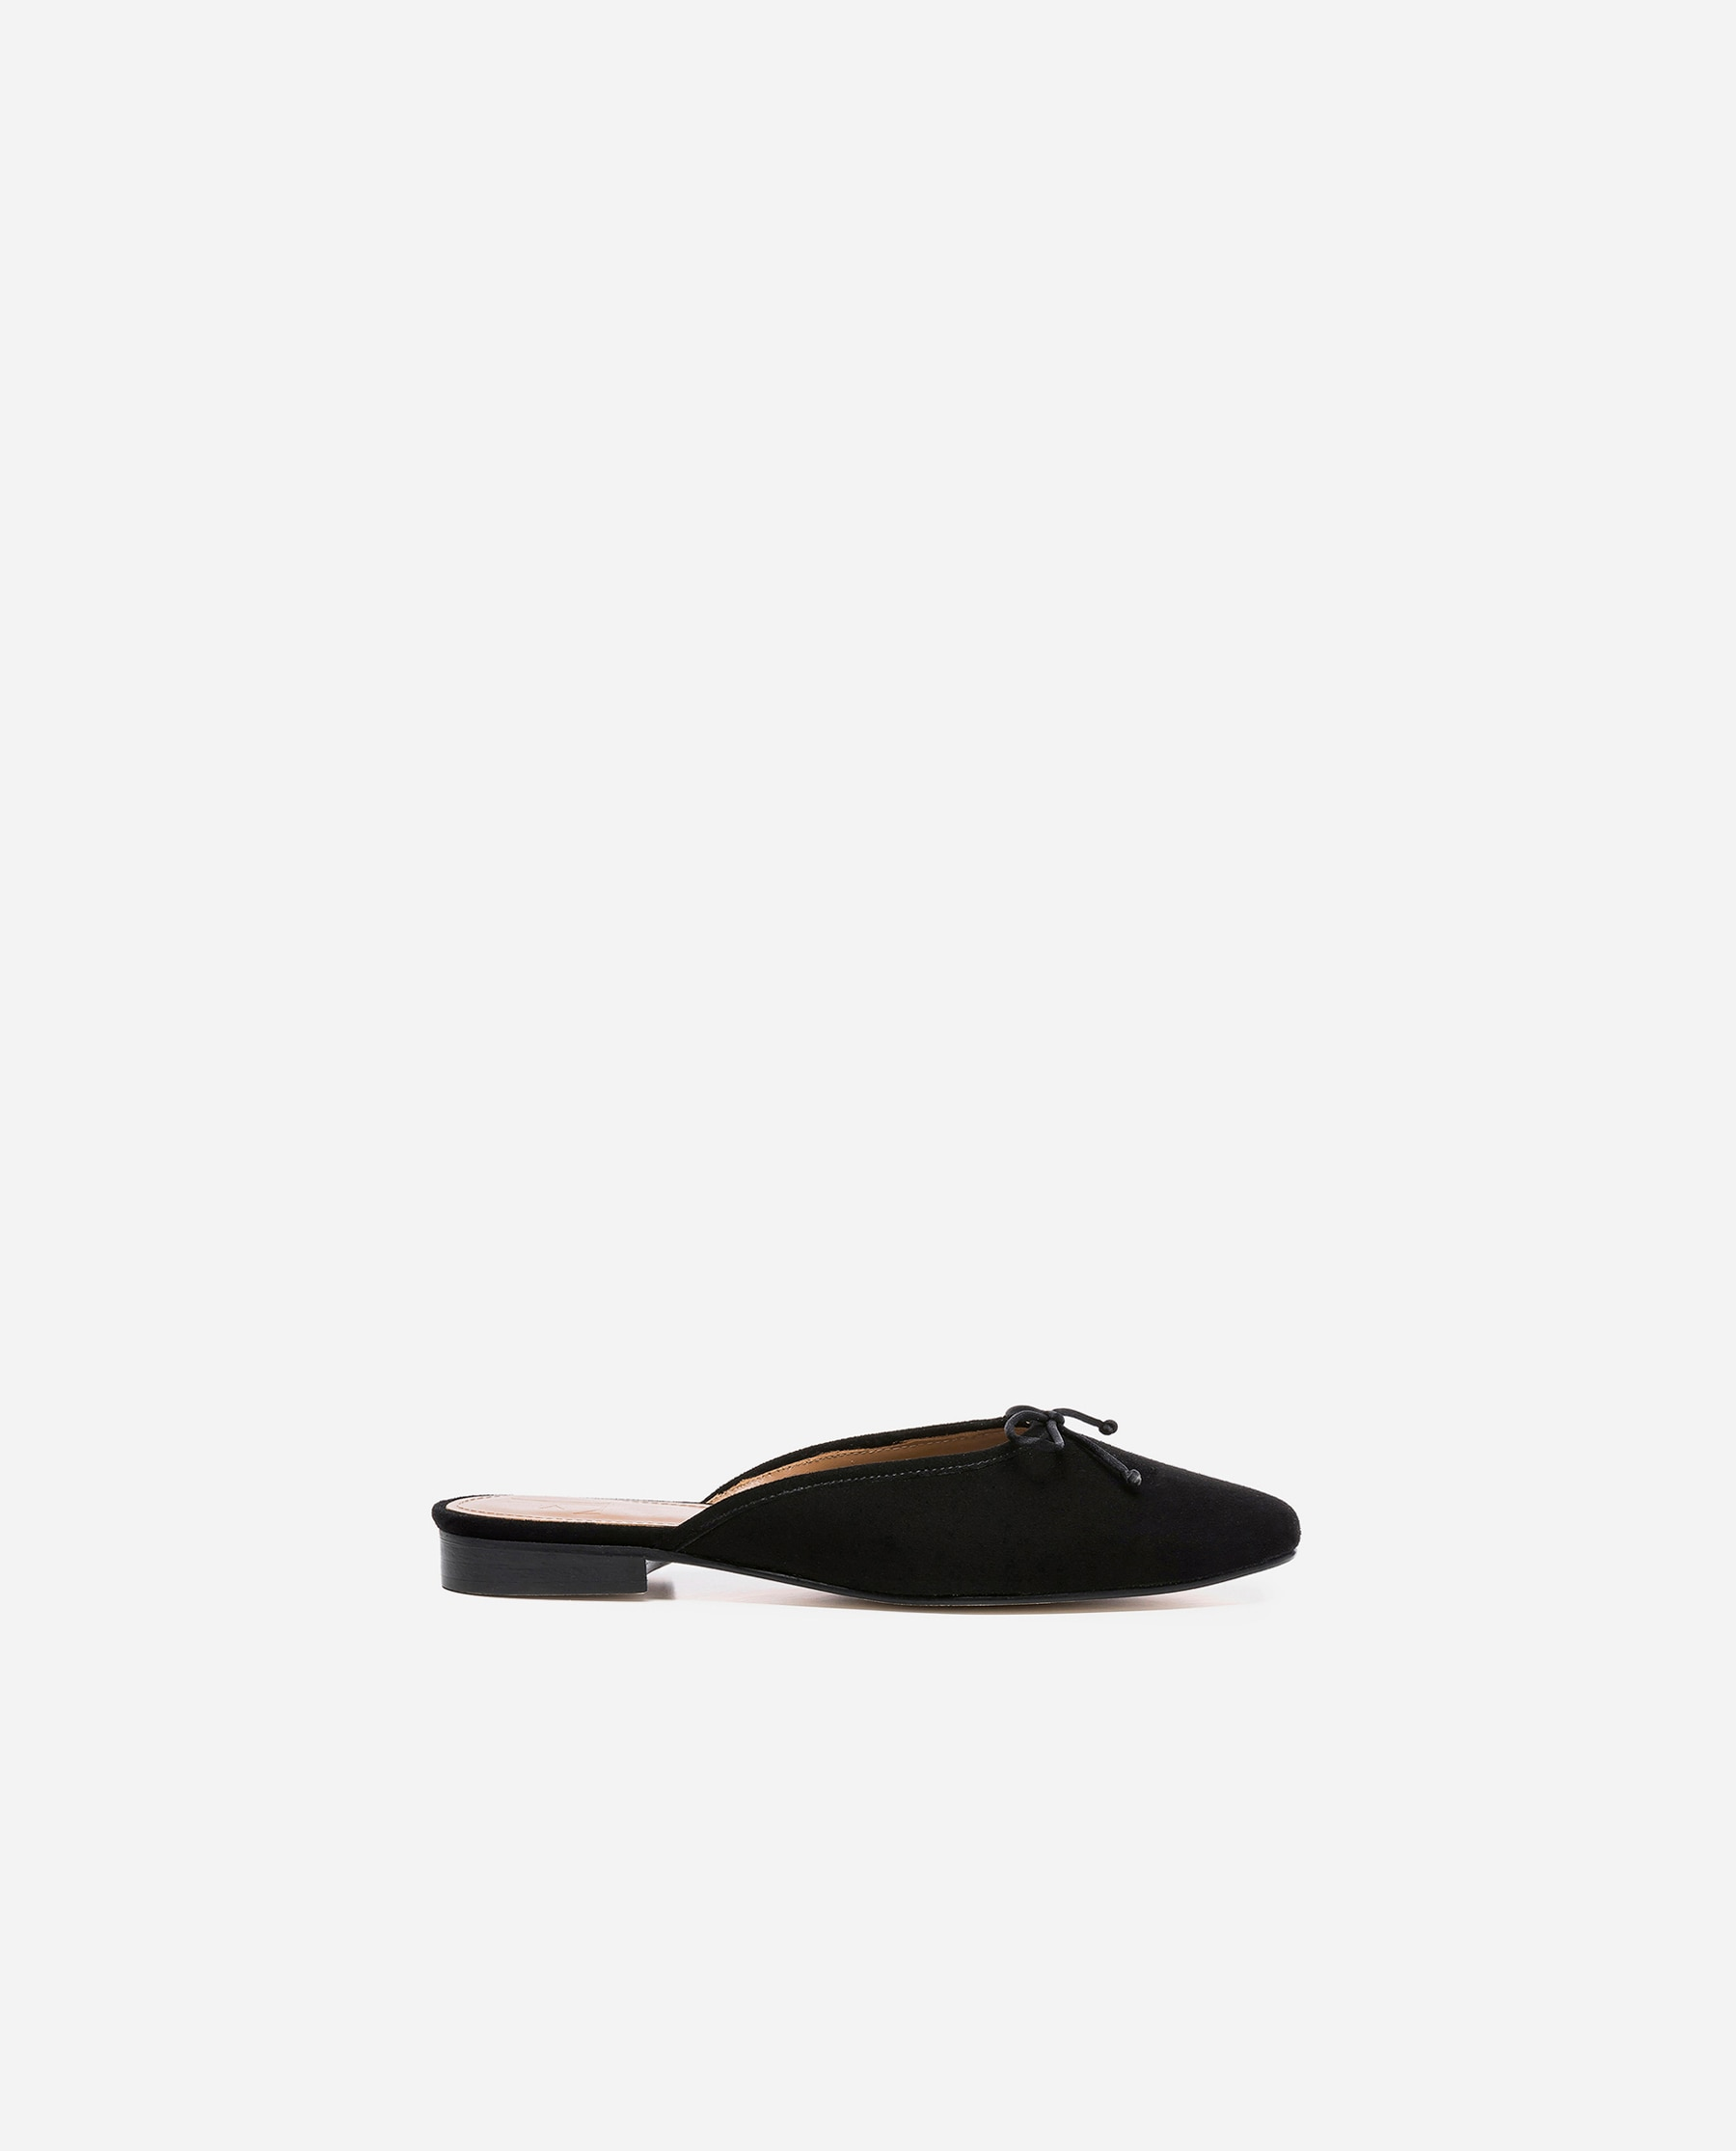 FLATTERED-MALVA-BLACK-SUEDE-SIDE(HQ)new